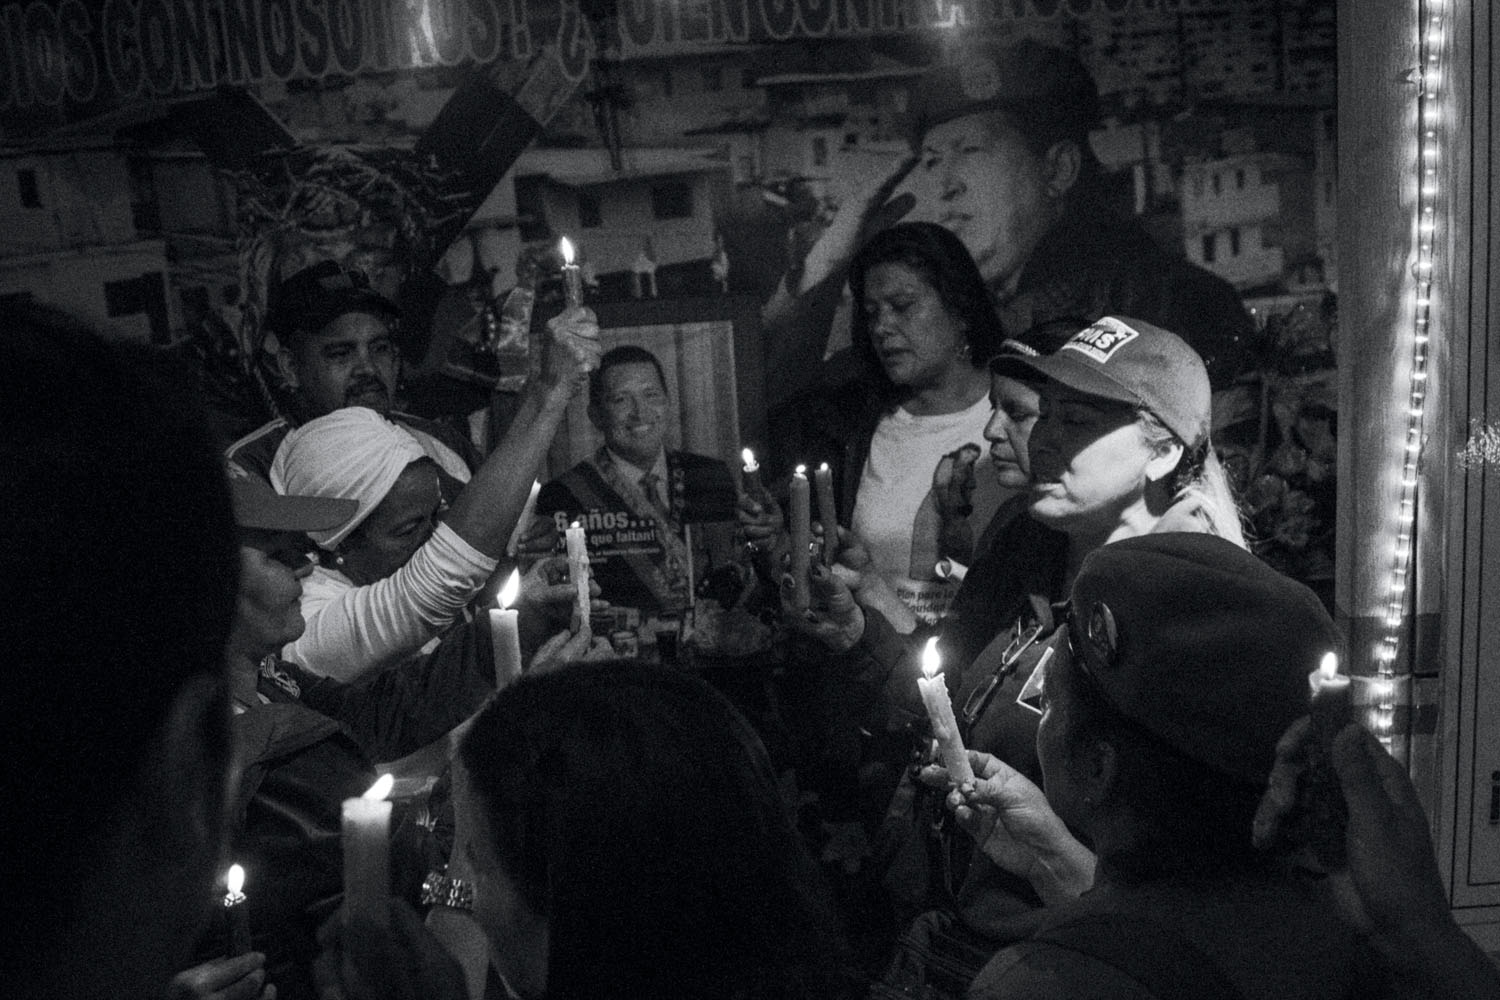 Photograph by Fabiola Ferrero. Supporters of the late President Hugo Chávez praying on the first anniversary of his death, in 2014, in a small chapel, named Santo Hugo Chávez, dedicated in his honor.